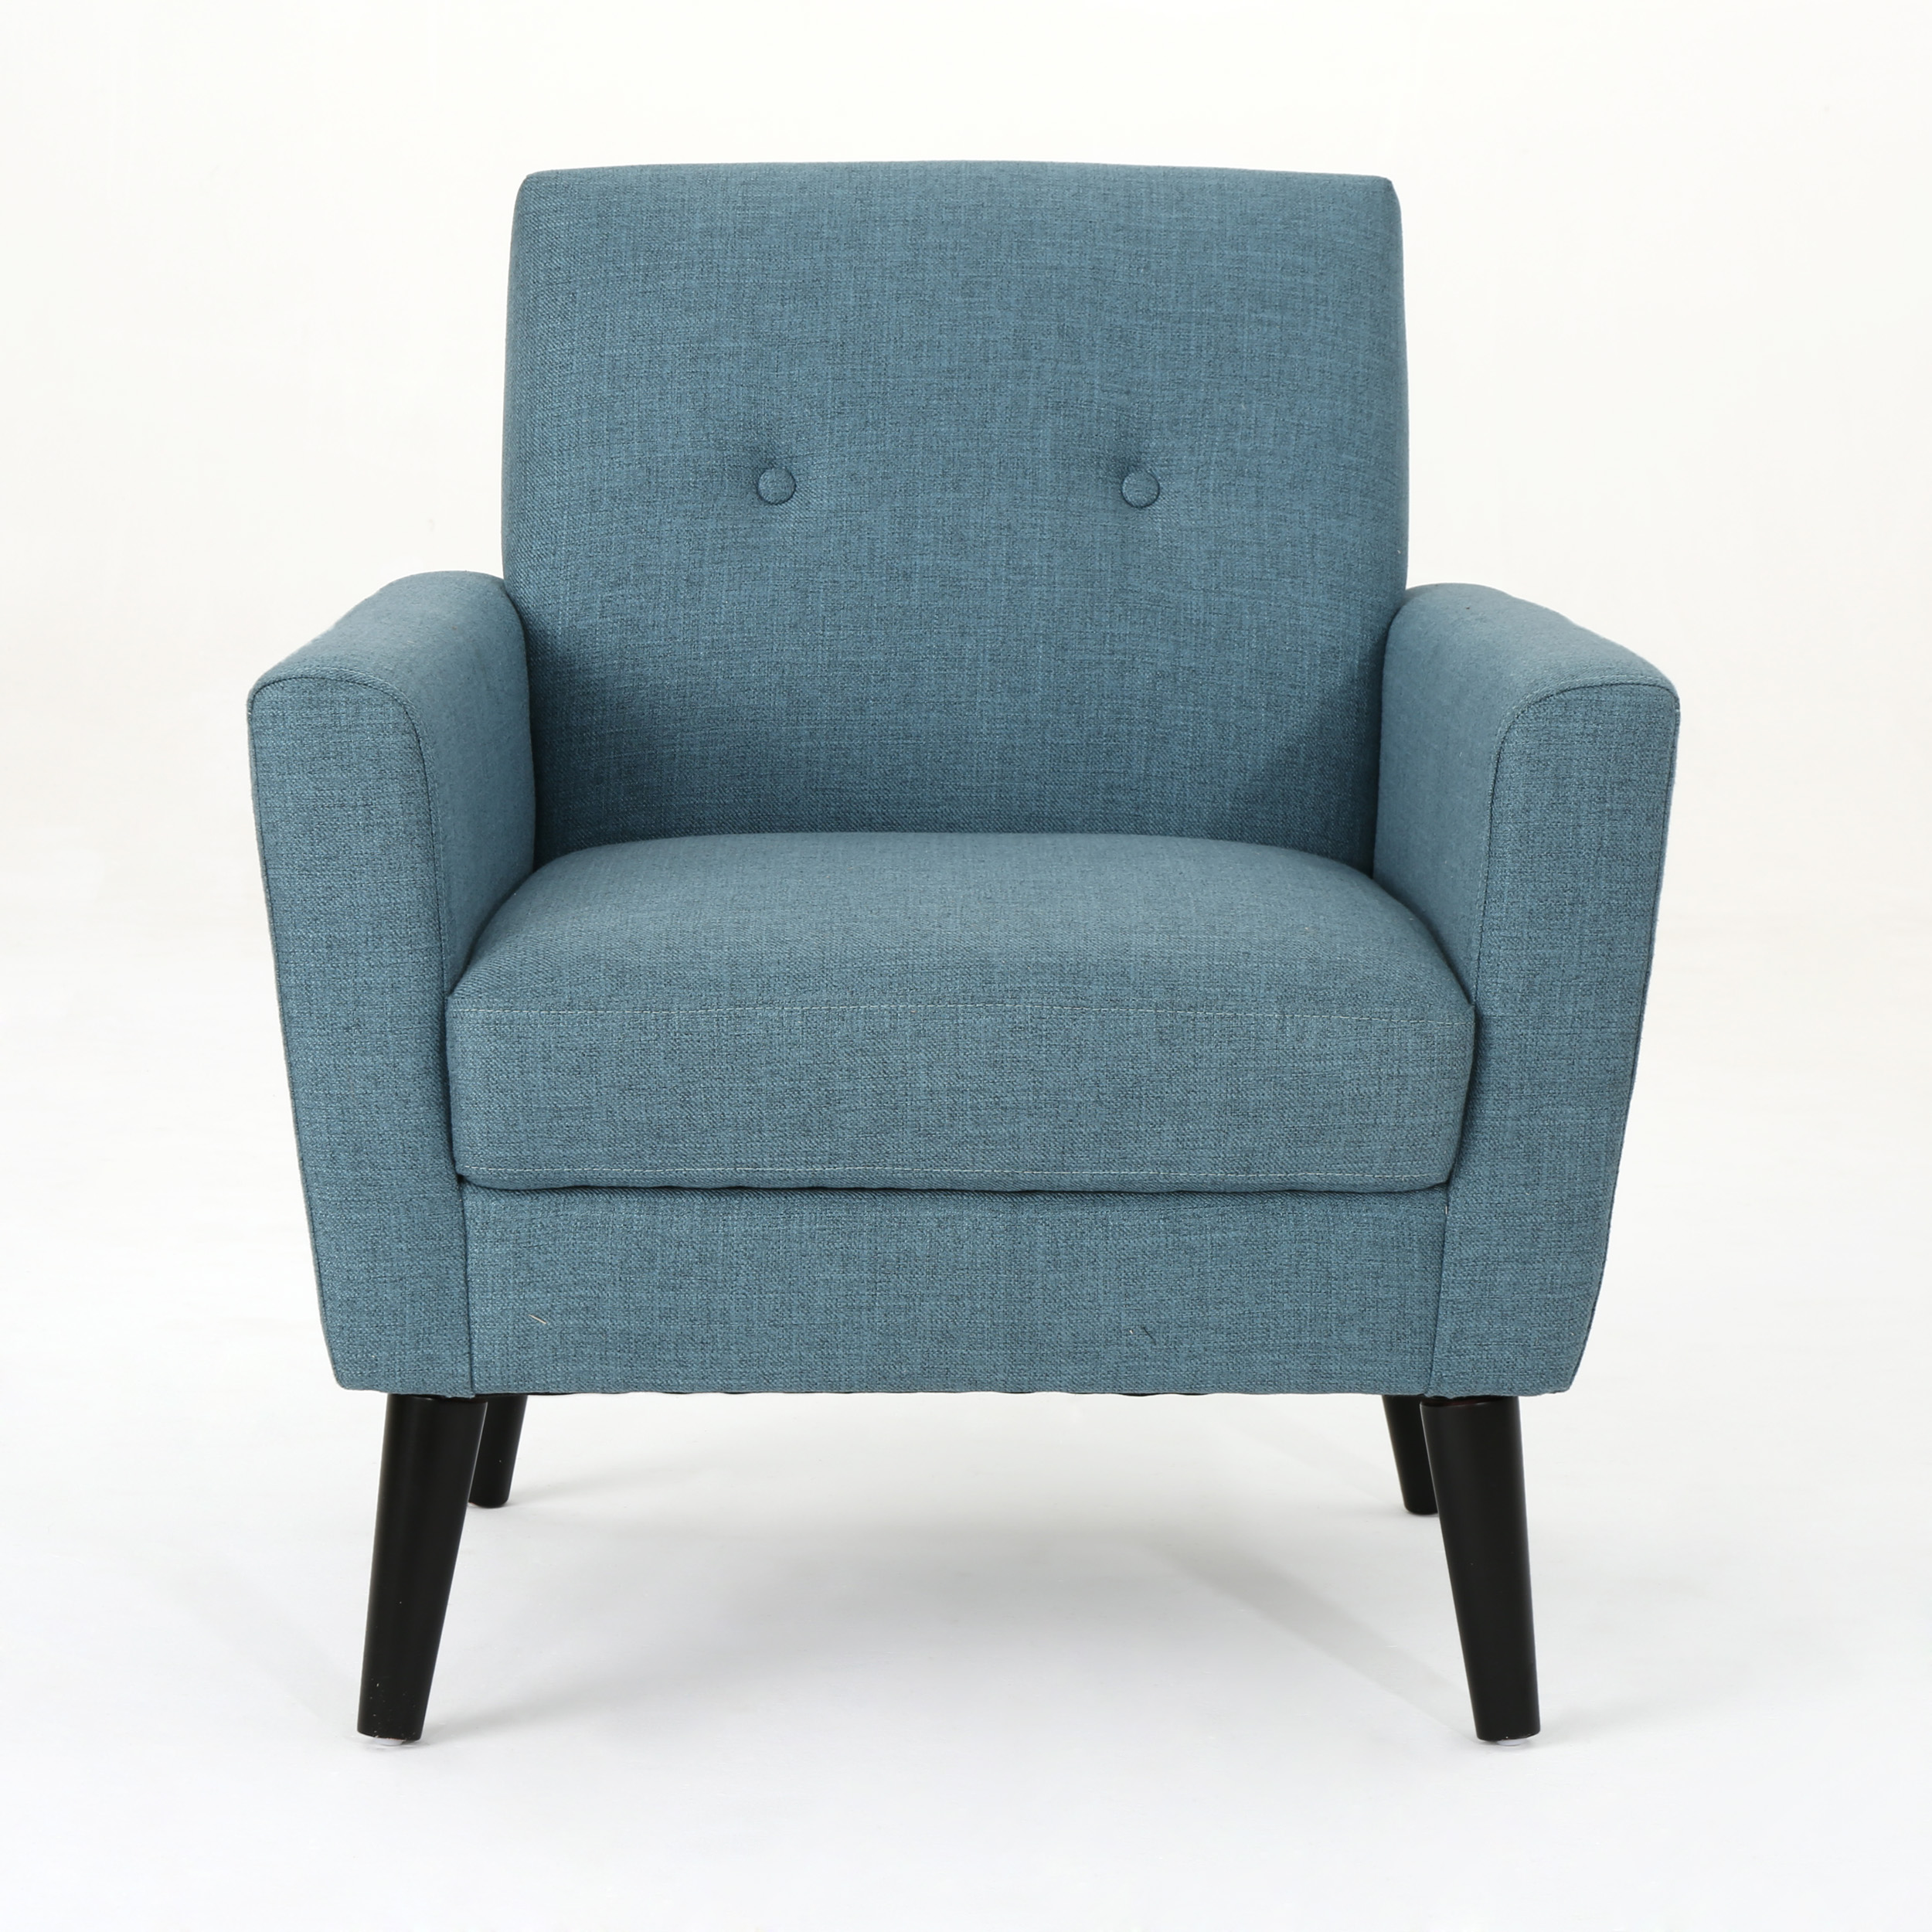 Sierra Mid Century Fabric Club Chair, Blue by GDF Studio